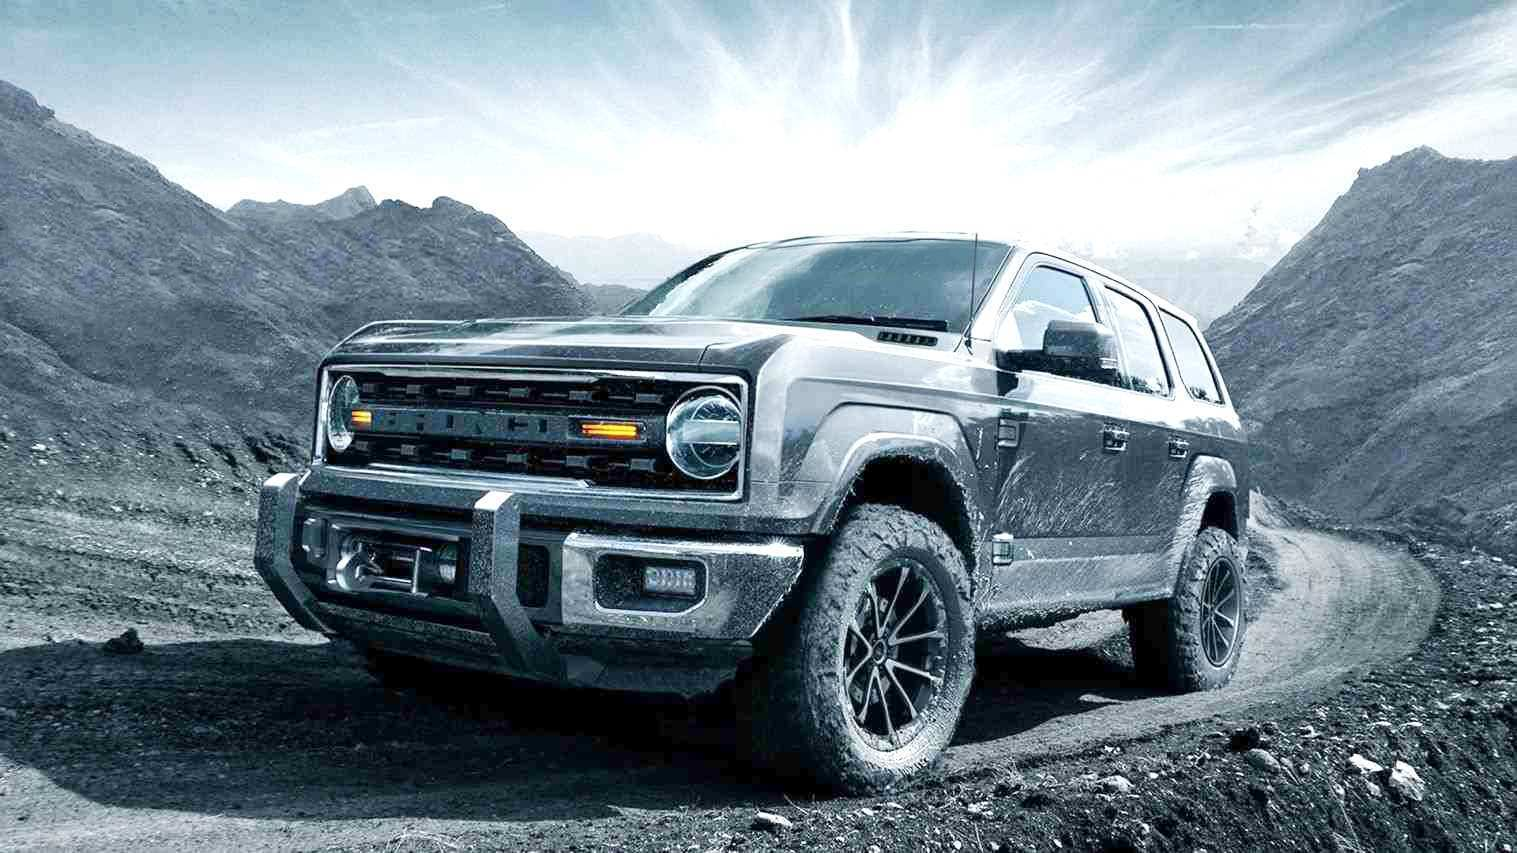 38 New 2020 Ford Bronco Wallpaper New Concept for 2020 Ford Bronco Wallpaper